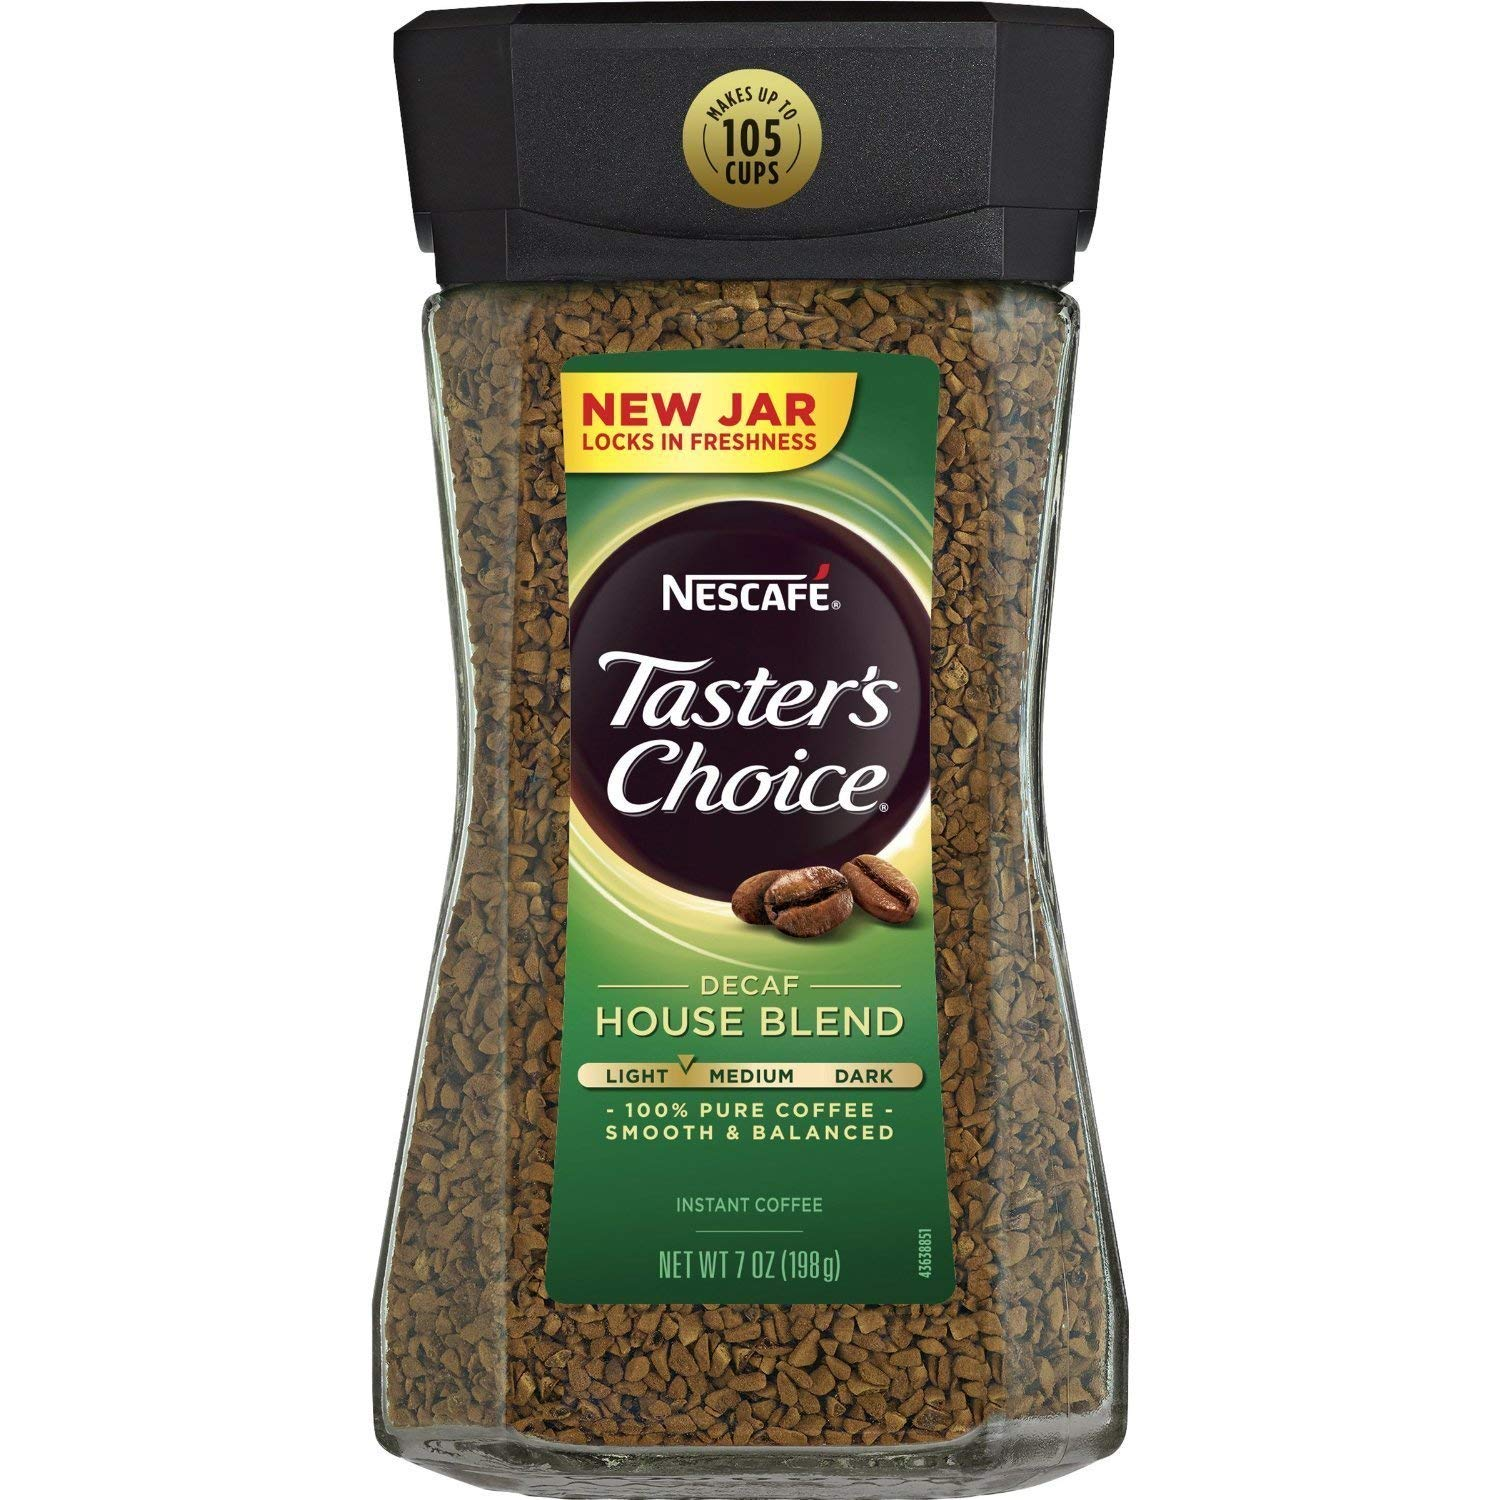 Nescafe Taster's Choice Decaf Instant Manufacturer OFFicial shop New Ja House Purchase Coffee Blend